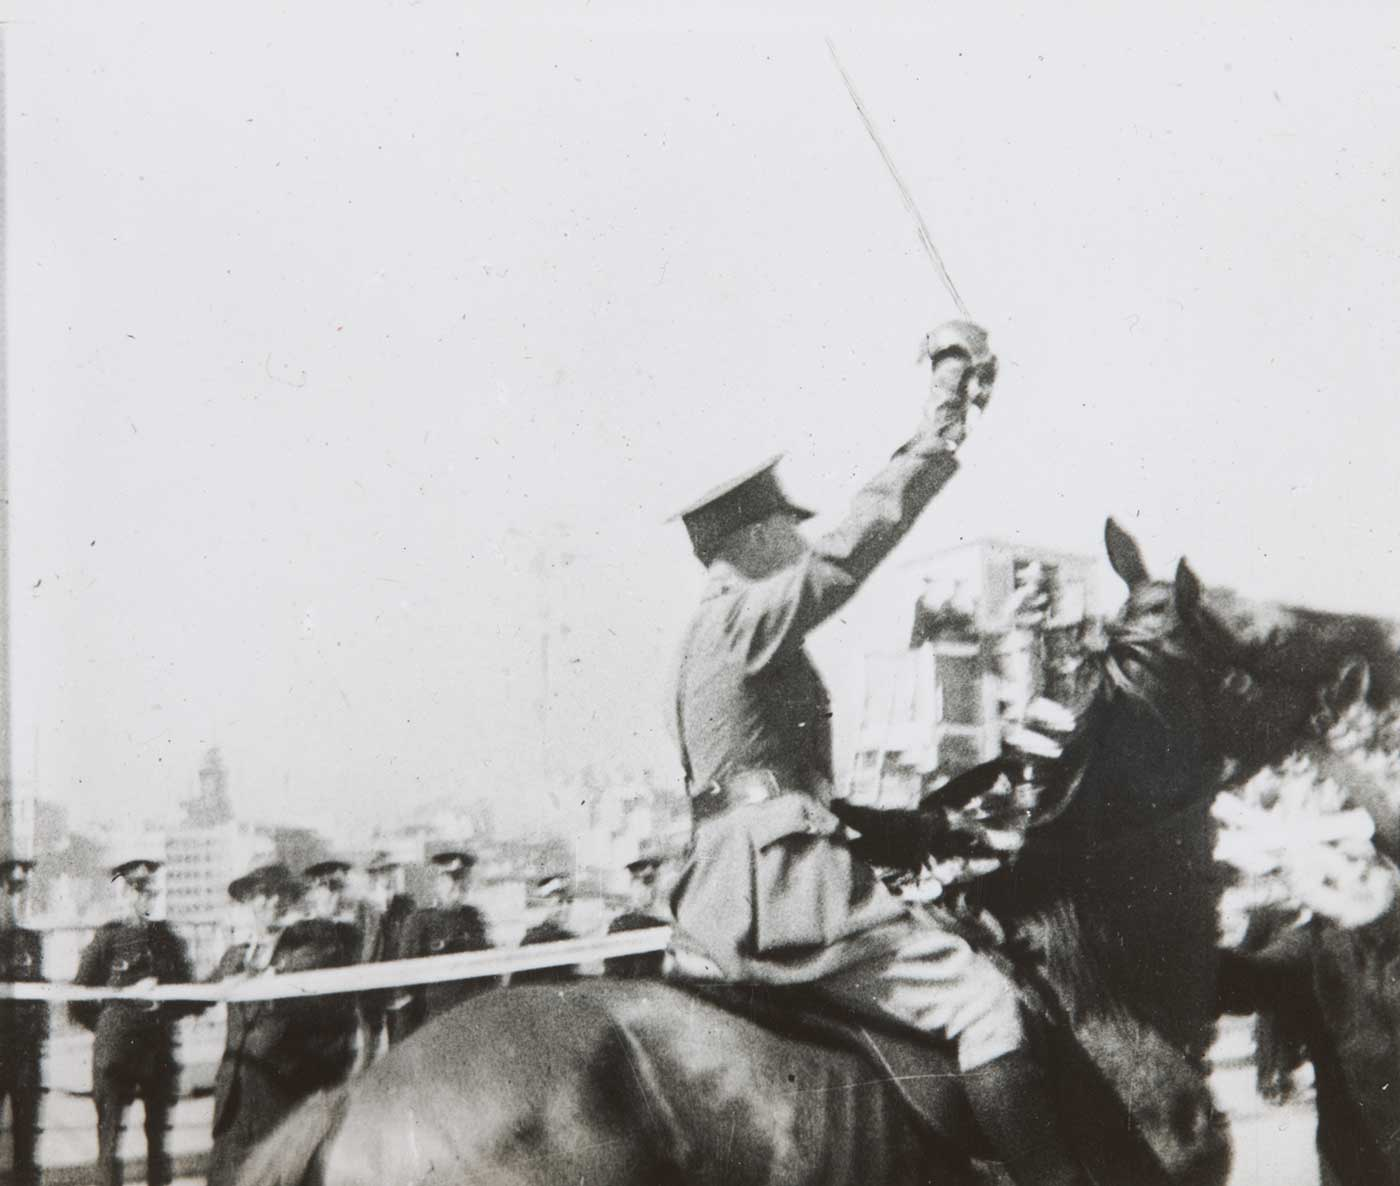 Black and white photo of a man on horseback with sword raised as he approaches a ribbon.  - click to view larger image